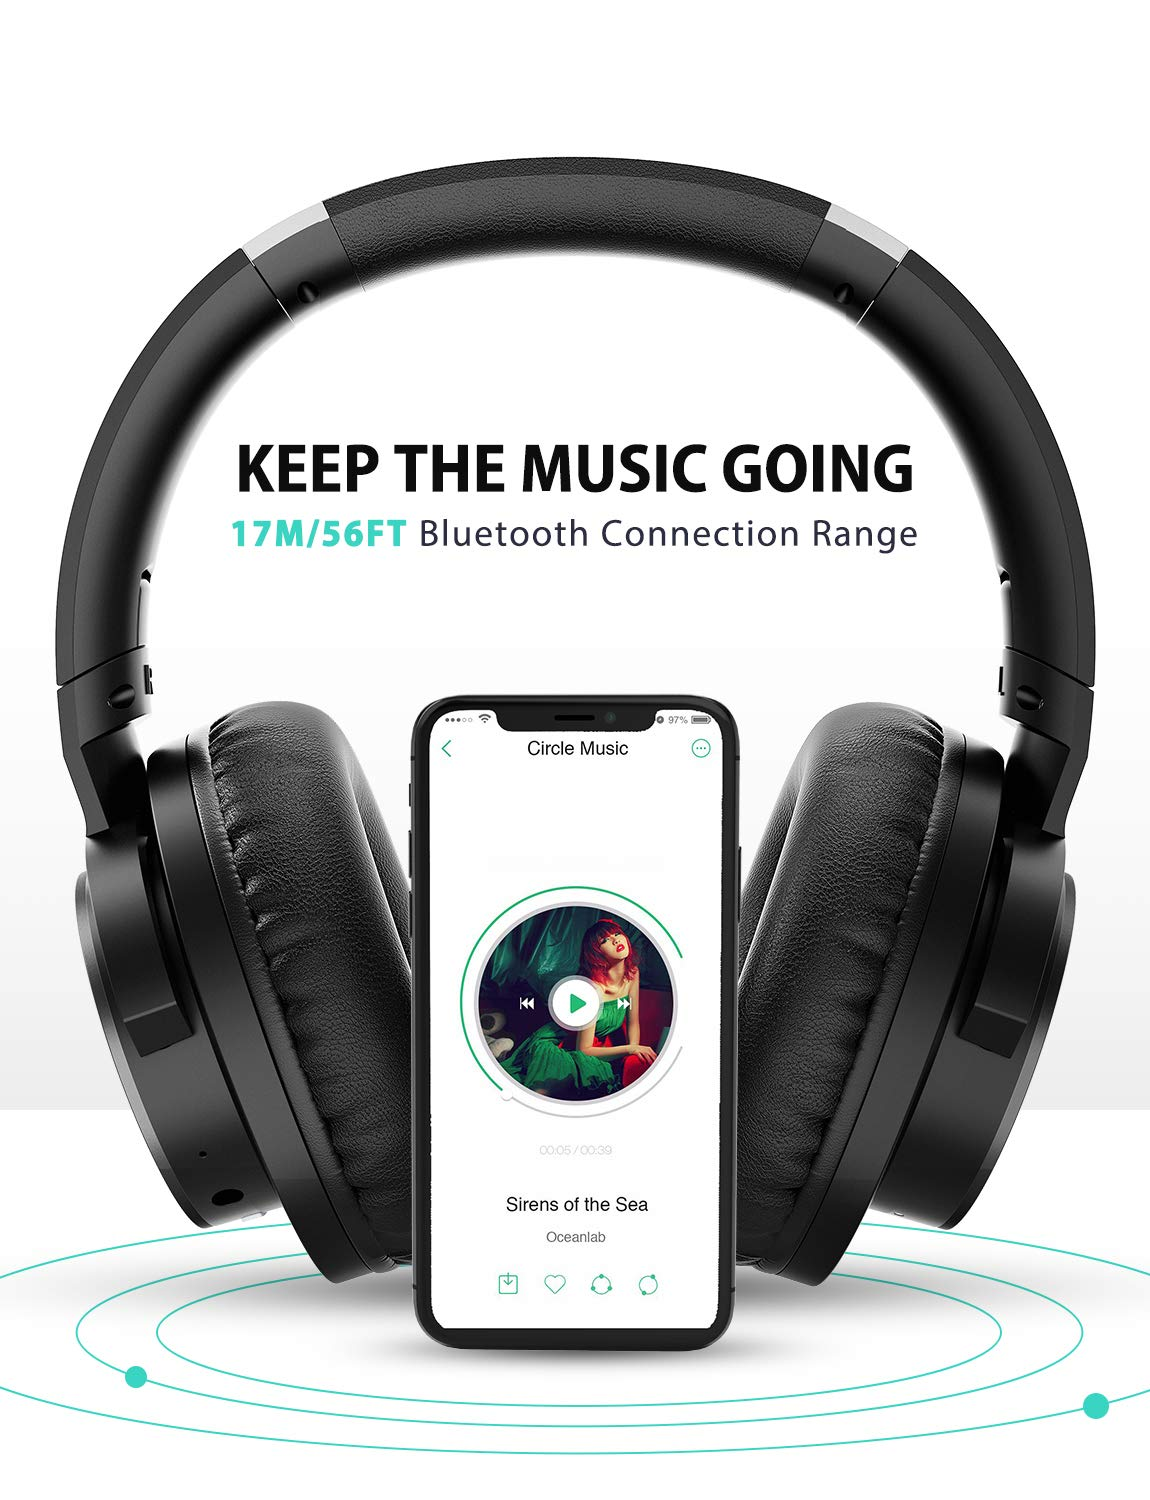 Mpow [Update] Active Noise Cancelling Headphones, 50 Hours Playtime with Hi-Fi Deep Bass, ANC Over Ear Bluetooth Headphones with Mic, Foldable Wireless Headset for Travel Work TV Cell Phone/PC by Mpow (Image #5)